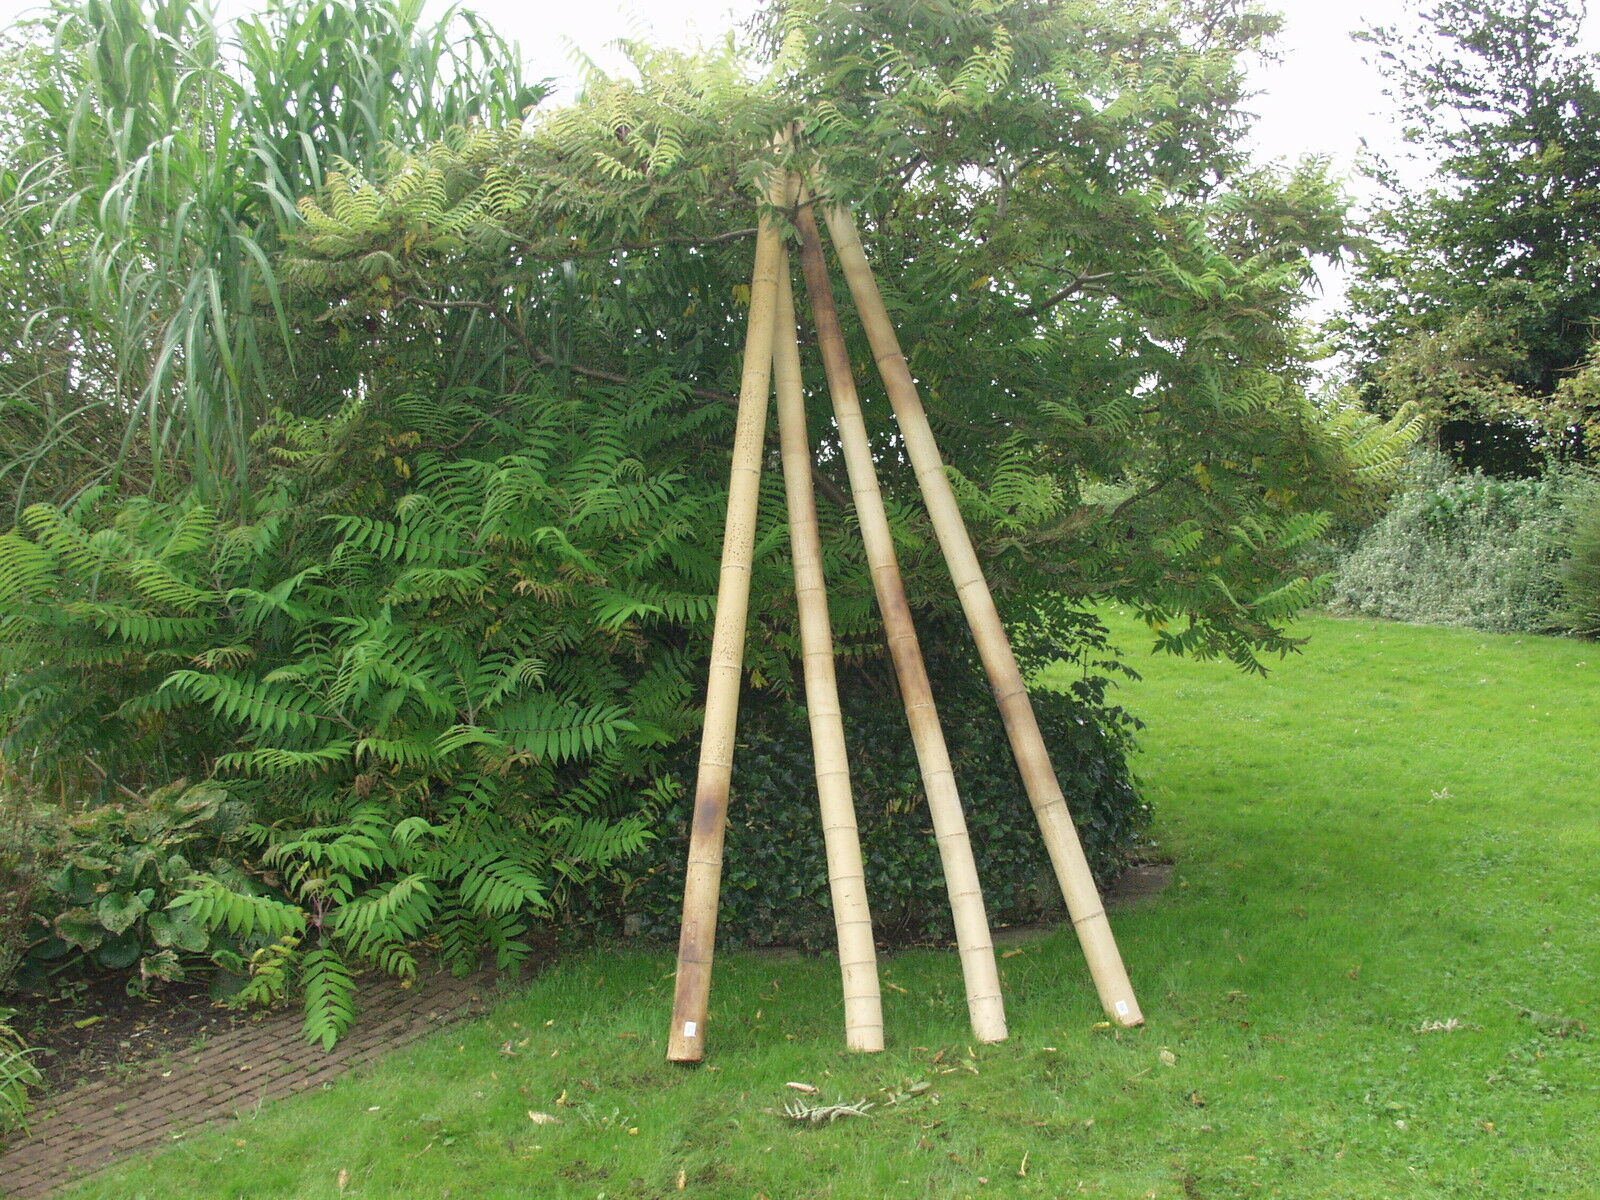 bamboo poles for screen anji nature 90 cm 7 up to 8 cm ebay. Black Bedroom Furniture Sets. Home Design Ideas